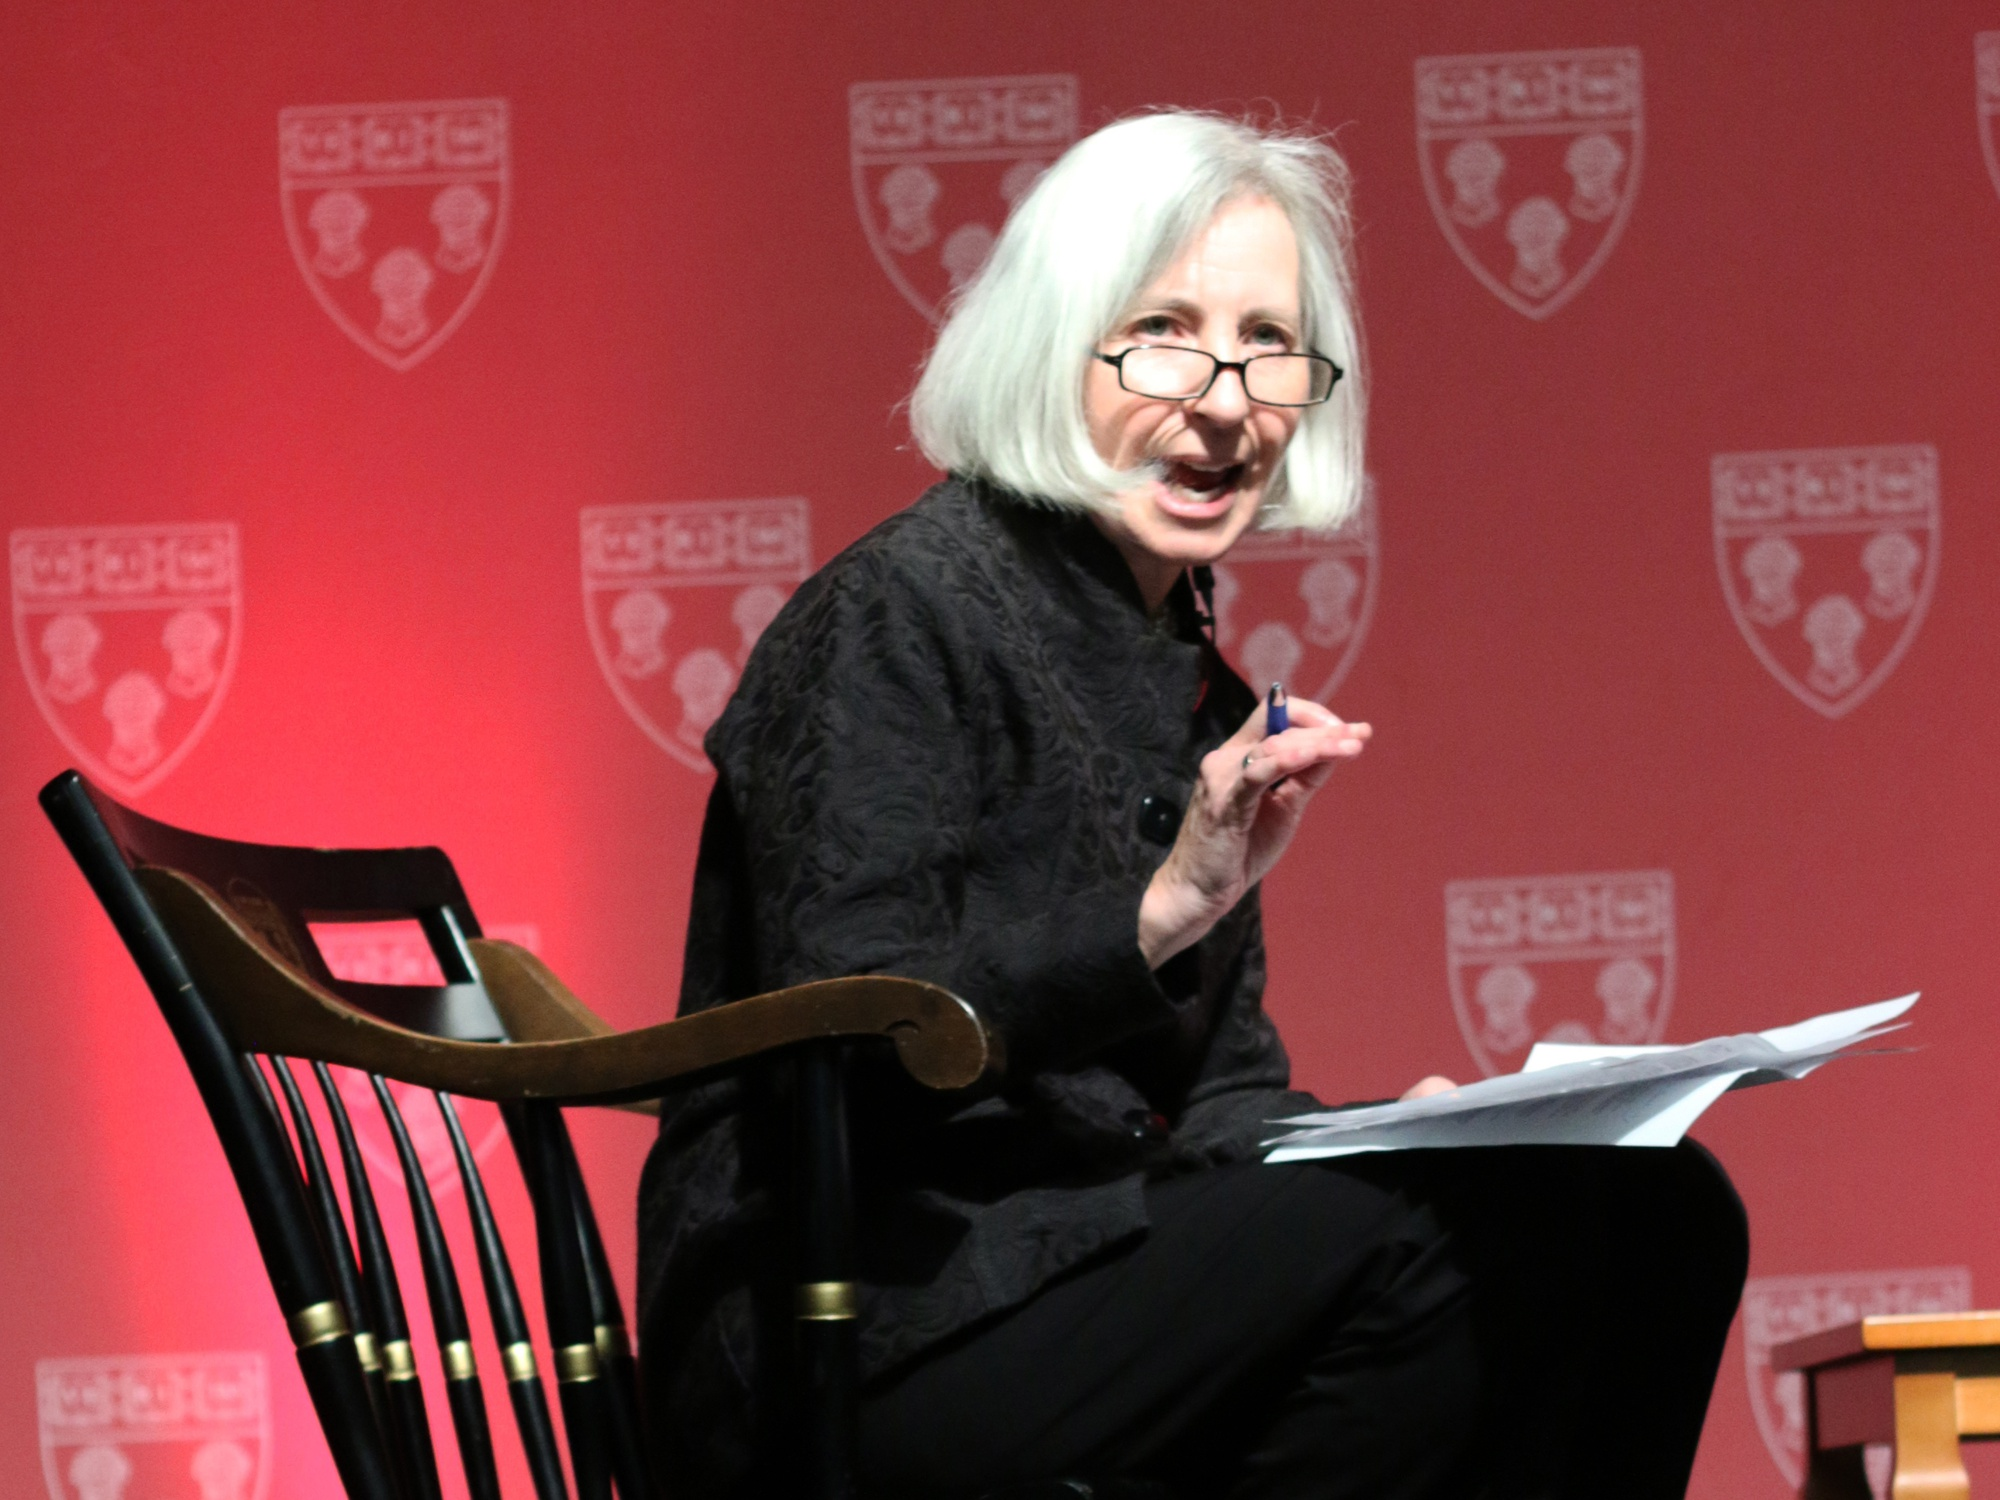 Harvard Law School Dean Martha L. Minow, shown here during Celebration 60 in 2013, defended race-based affirmative action for law school admissions in an amici curiae brief.